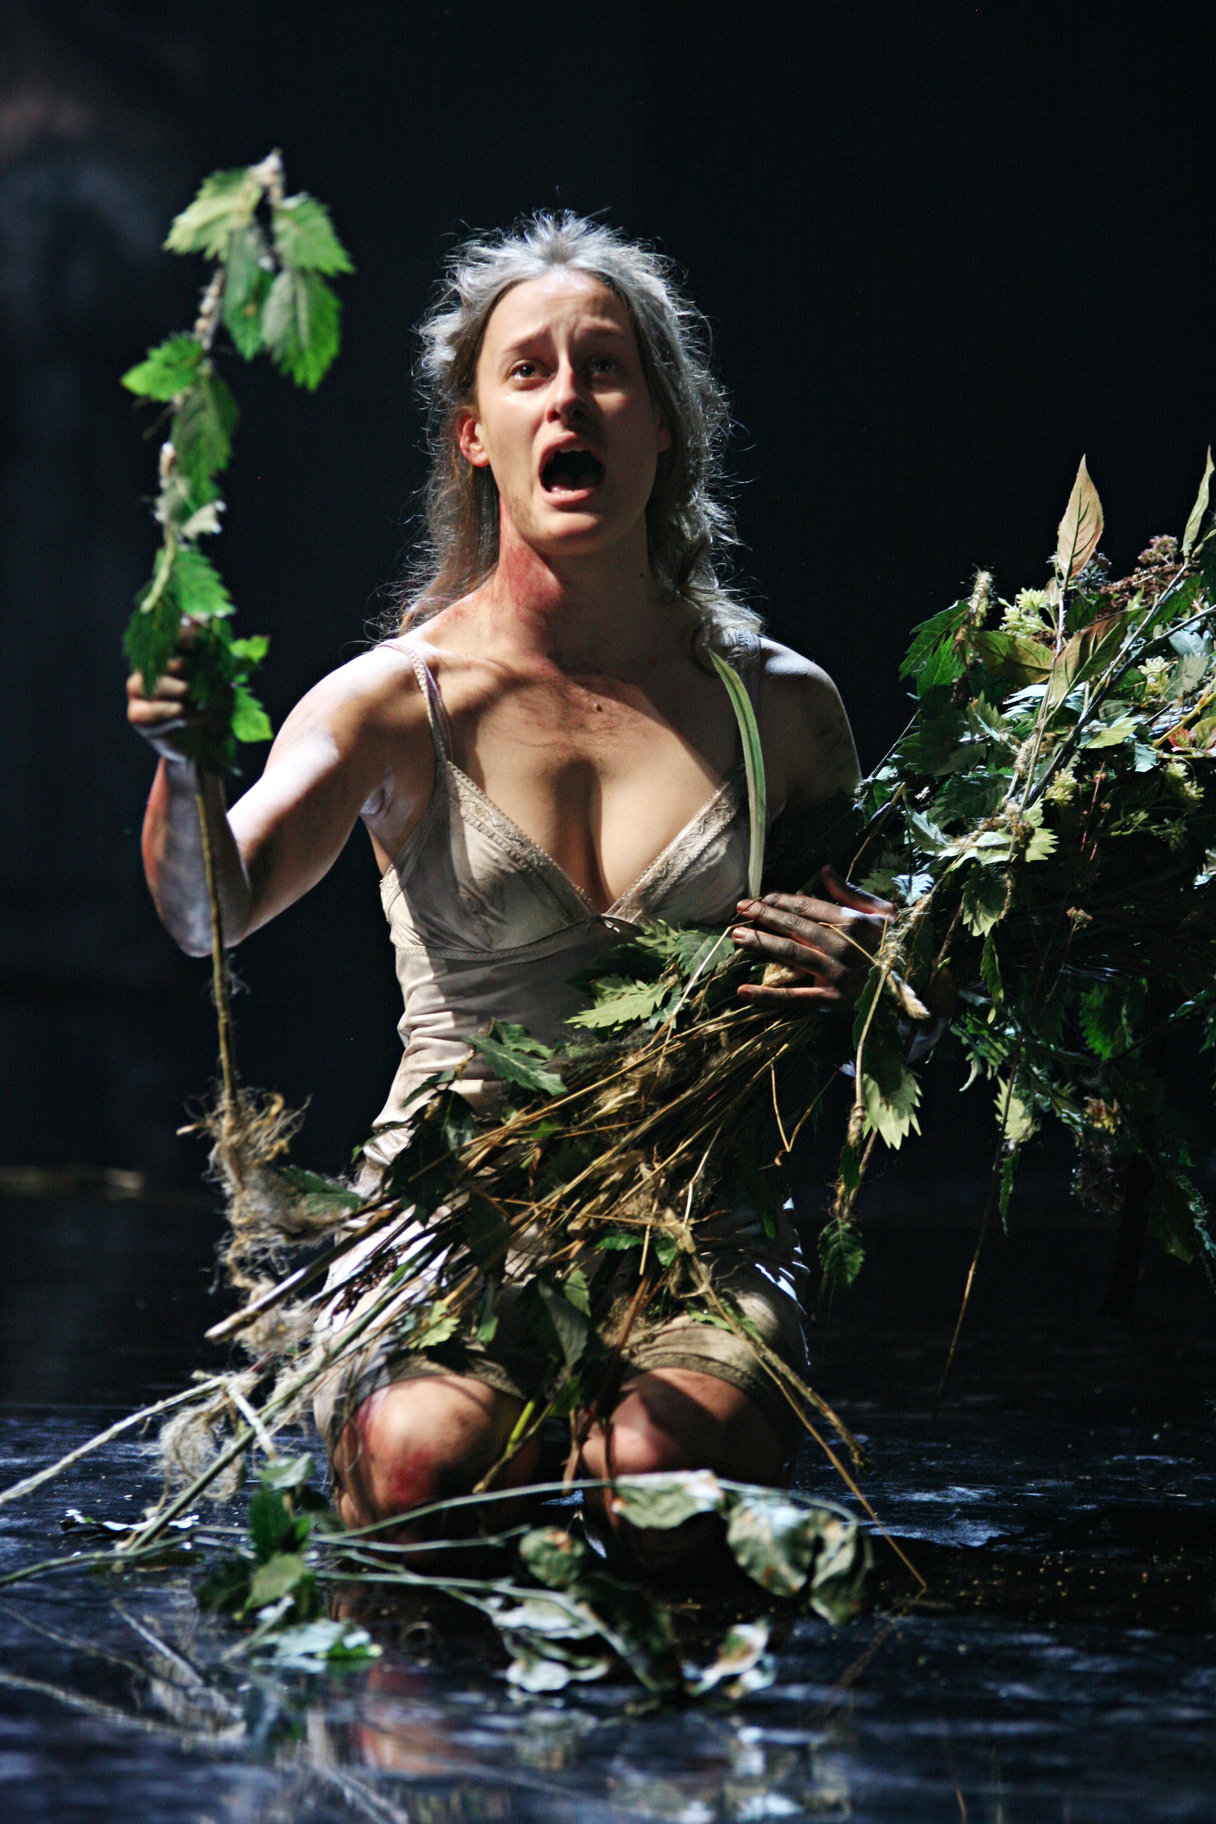 The mad Ophelia with arms full of weeds.